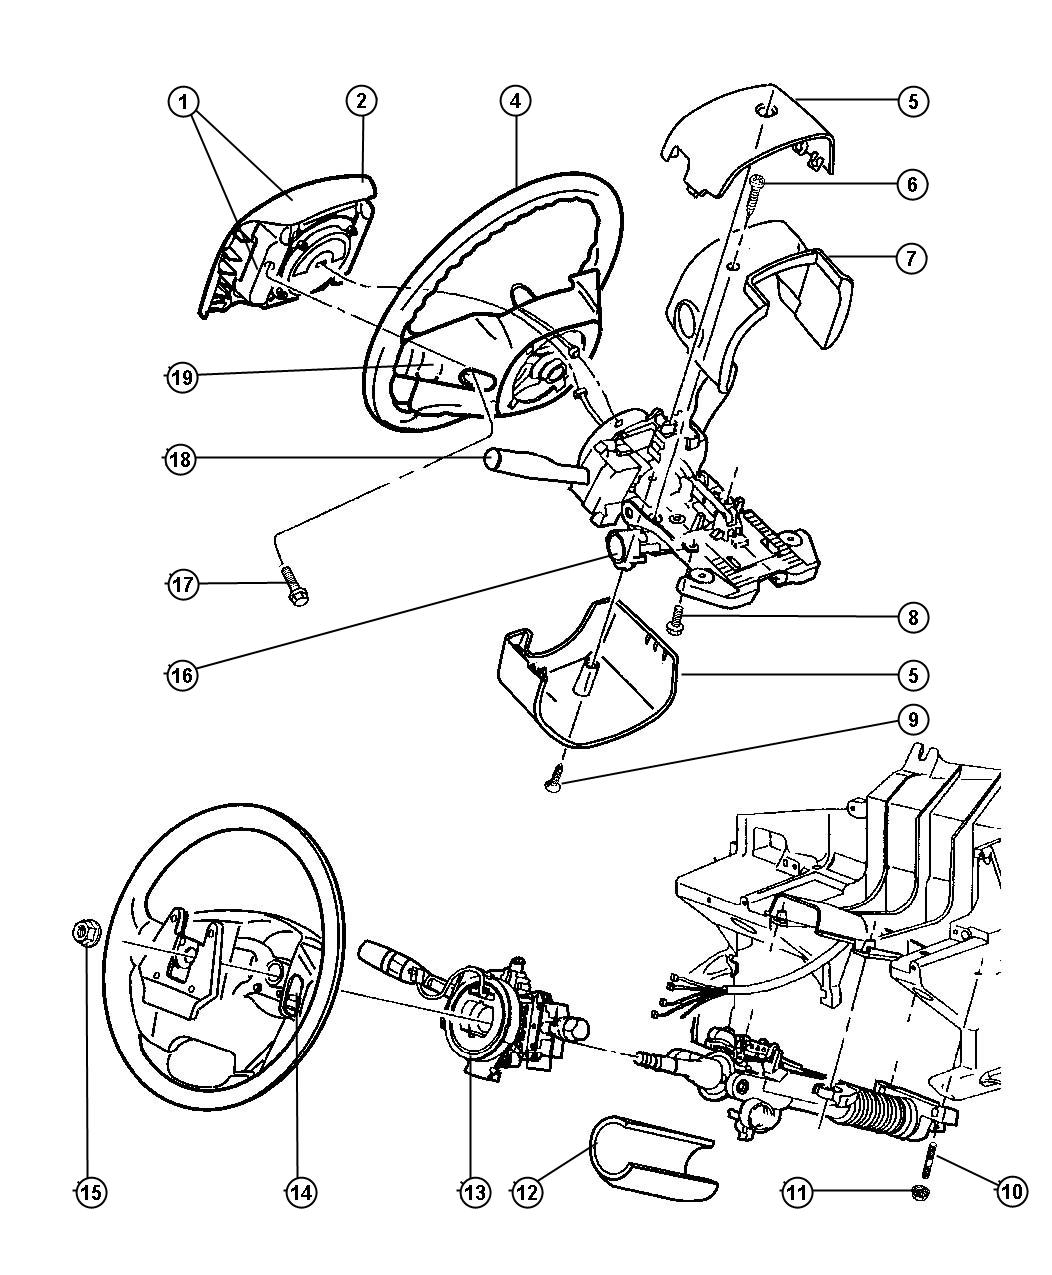 1999 Jeep Grand Cherokee Parts Diagram